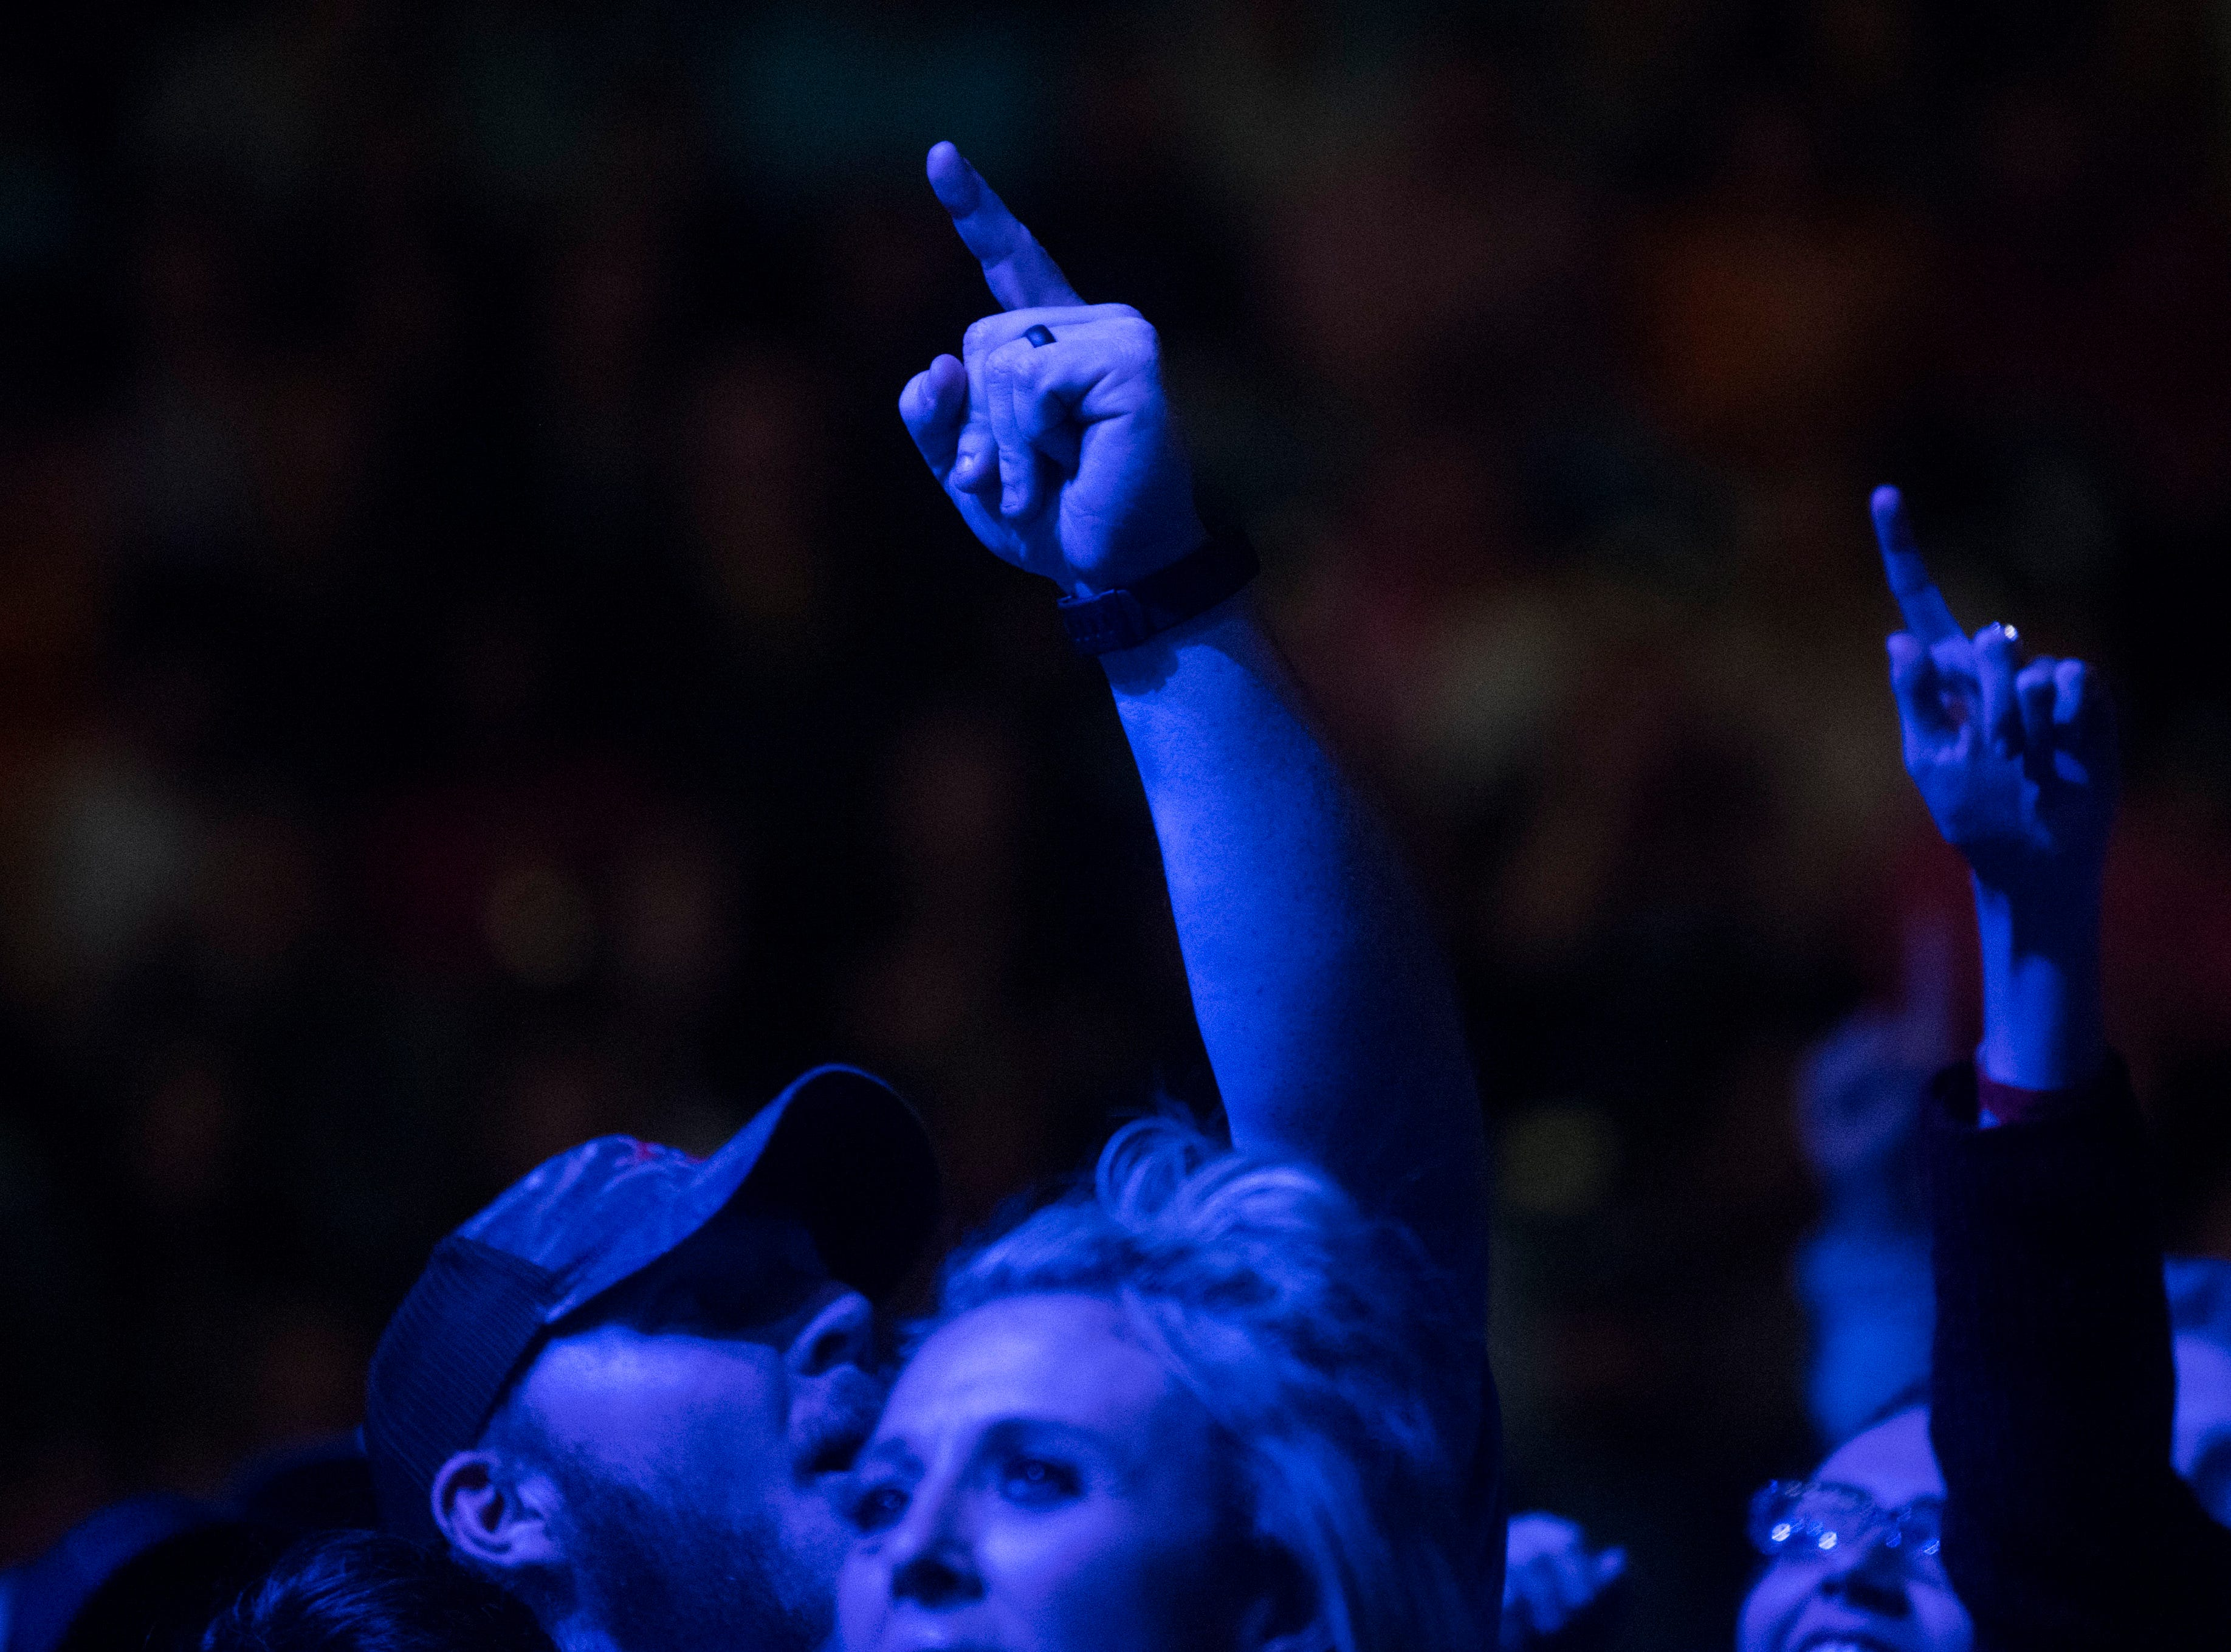 A fan raises their hand as Walker McGuire opens for Luke Combs in Thompson-Boling Arena in Knoxville Friday, Feb. 15, 2019.